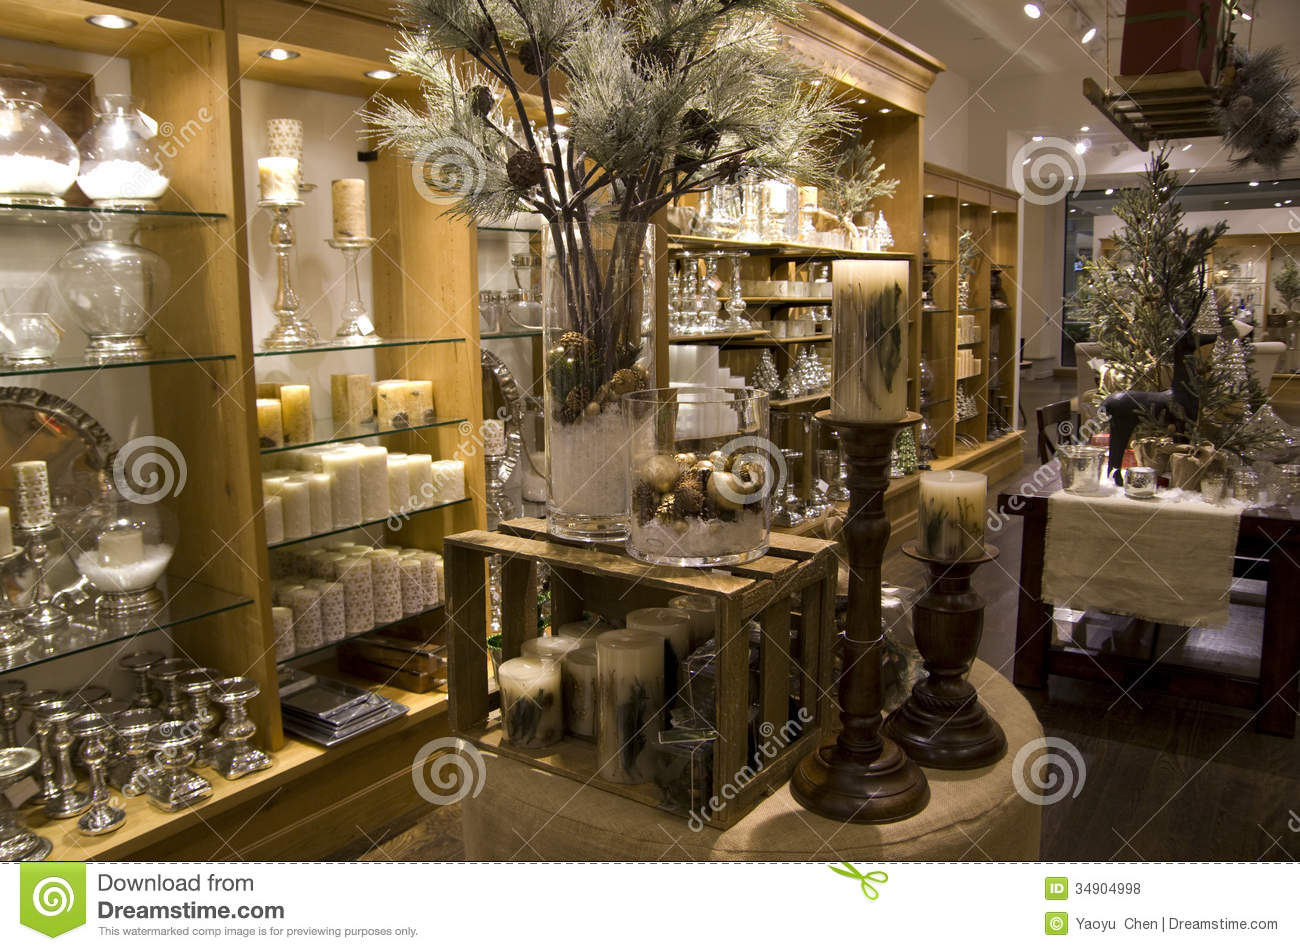 Home decor store stock photo image of lighting shelves for Home furnishing stores